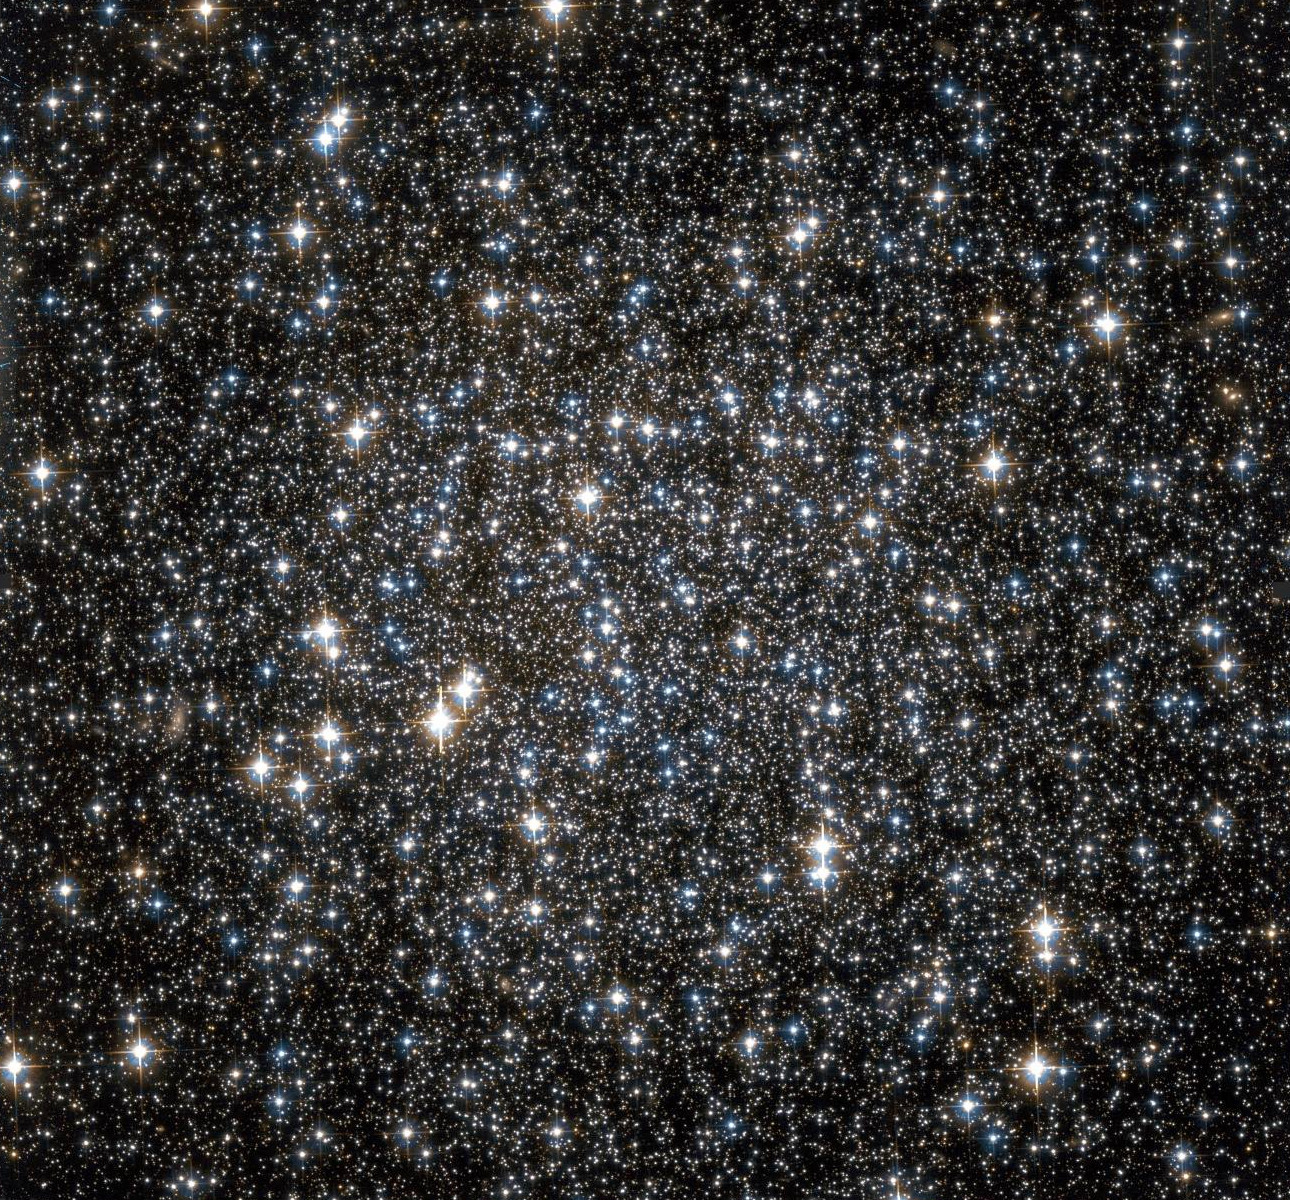 NASA/ESA Hubble Space Telescope Observation of the central region of the Galactic globular cluster NGC6101: compared to the majority of Galactic globular clusters, NGC6101 shows a less concentrated distribution of observable stars. Image credit: NASA.